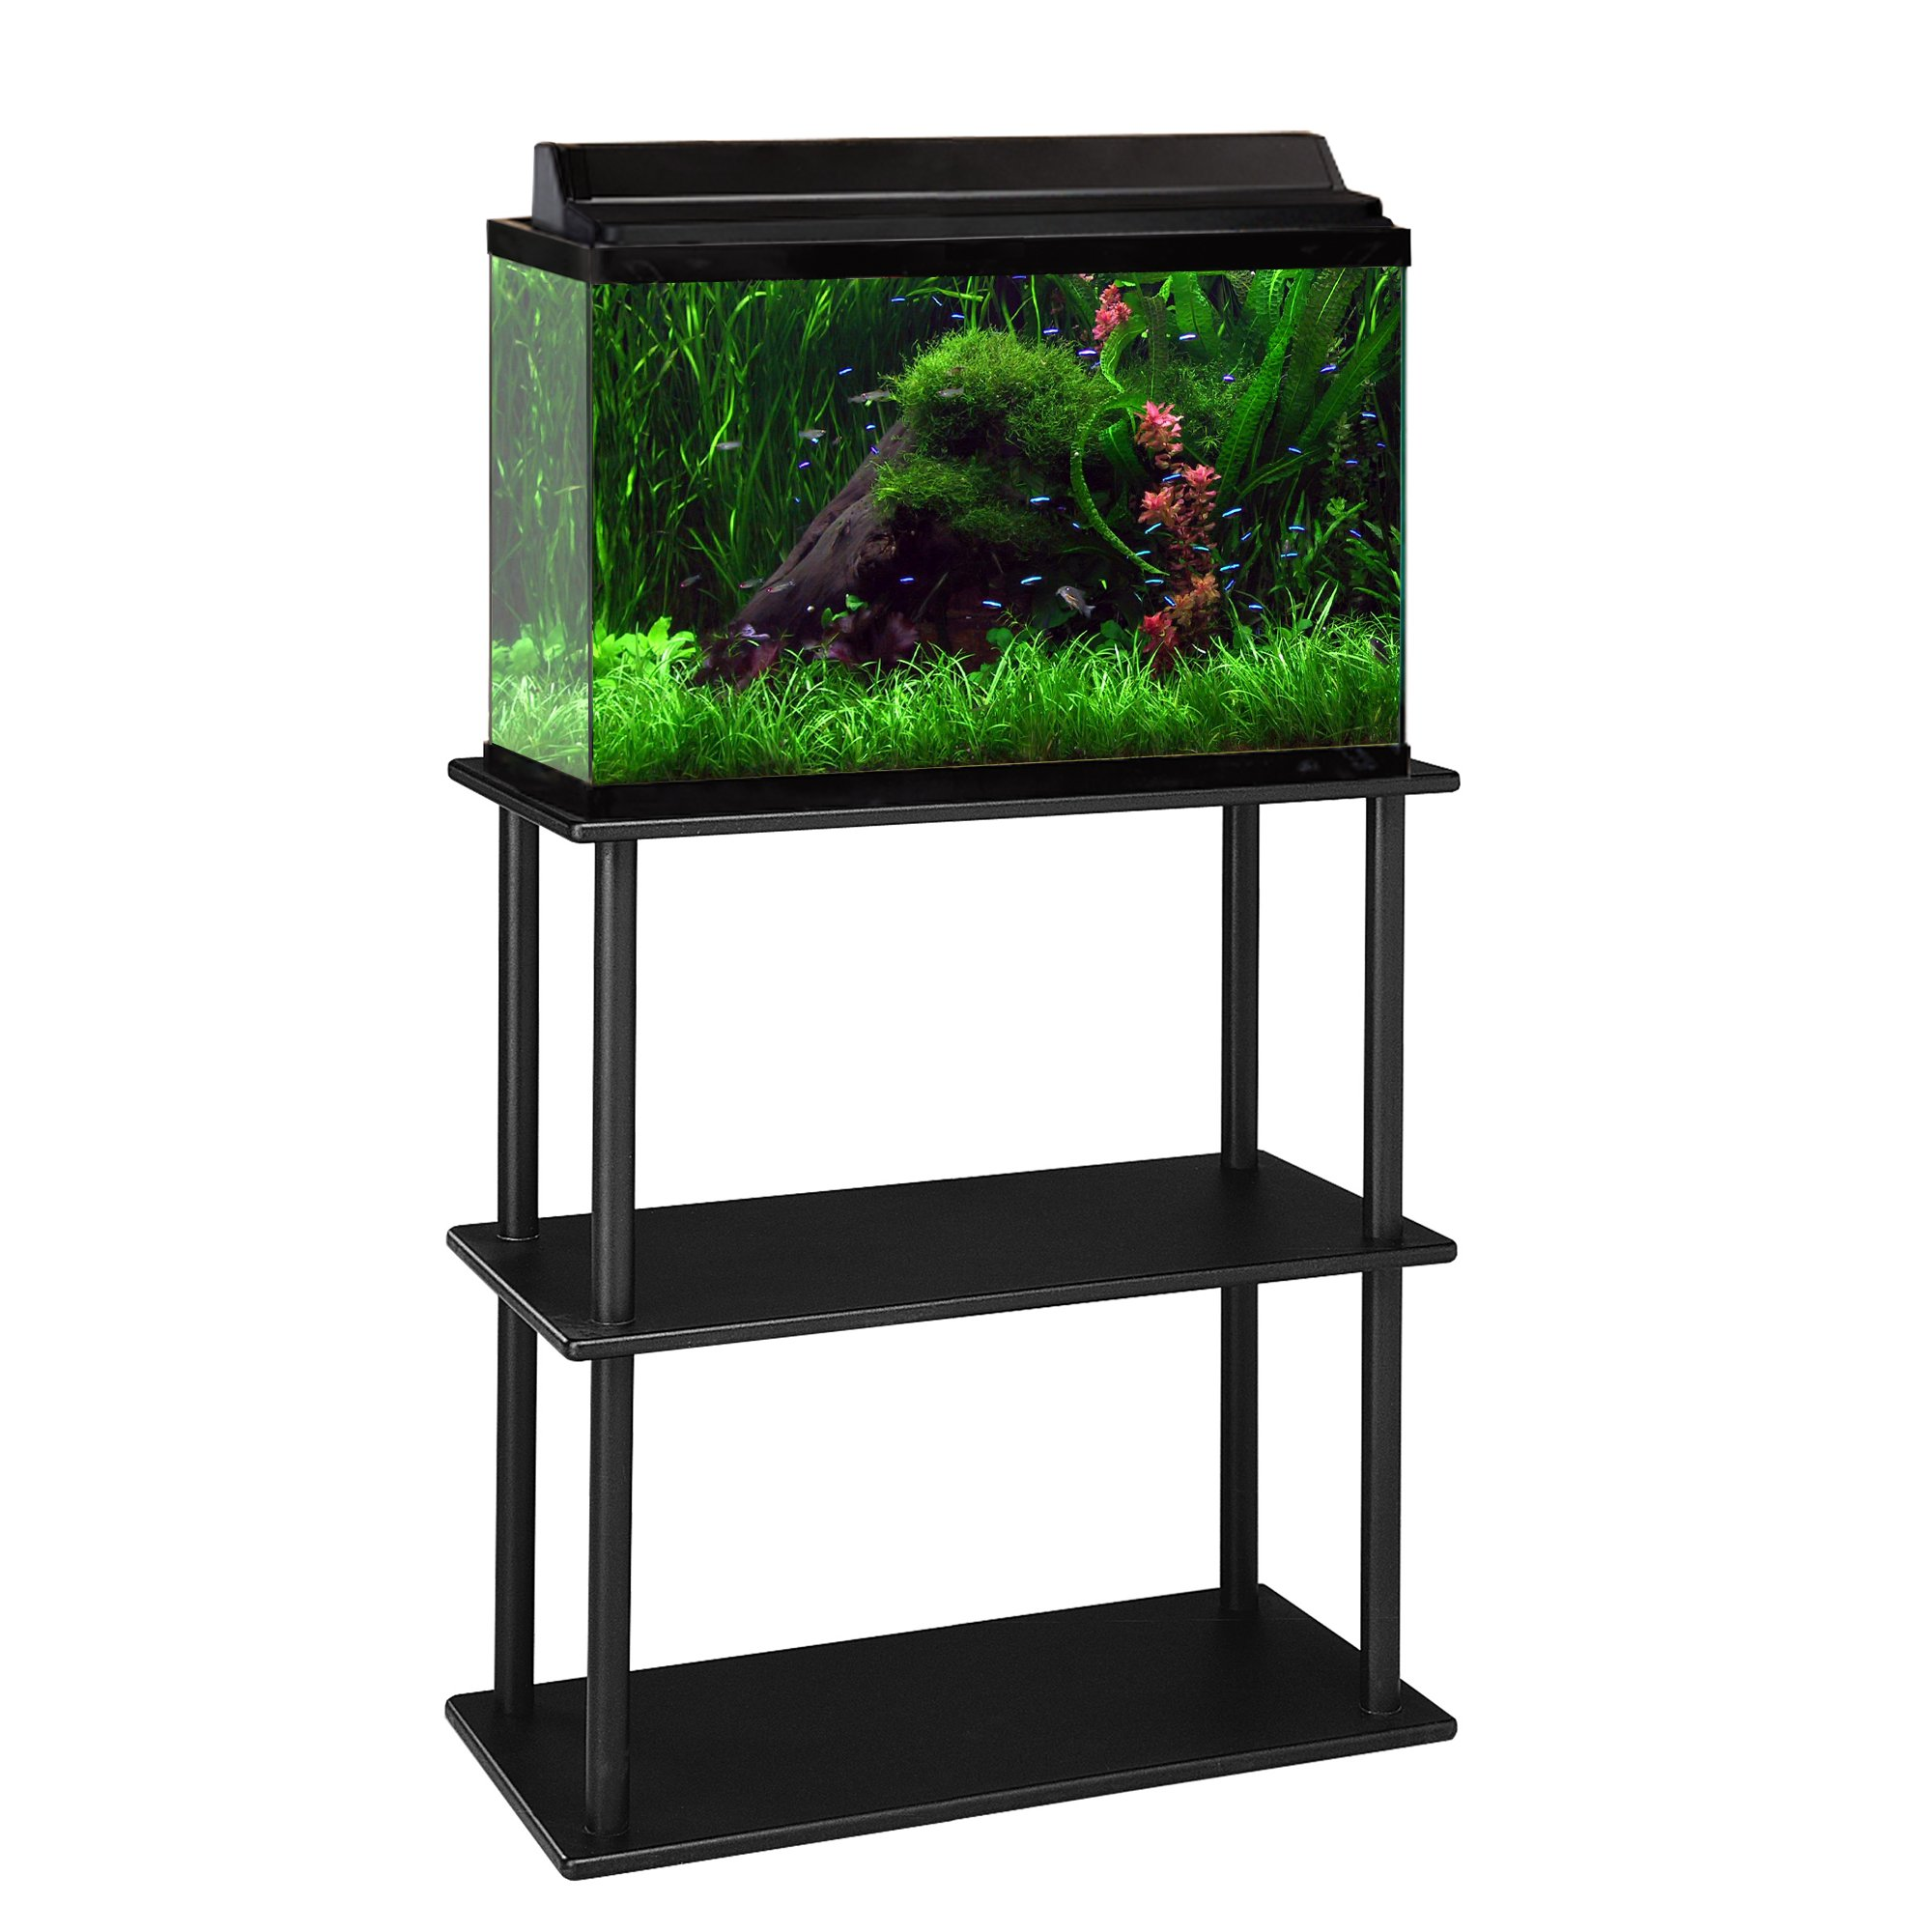 Aquatic fundamentals 10 20 gallon aquarium stand with for 20 gallon fish tank dimensions